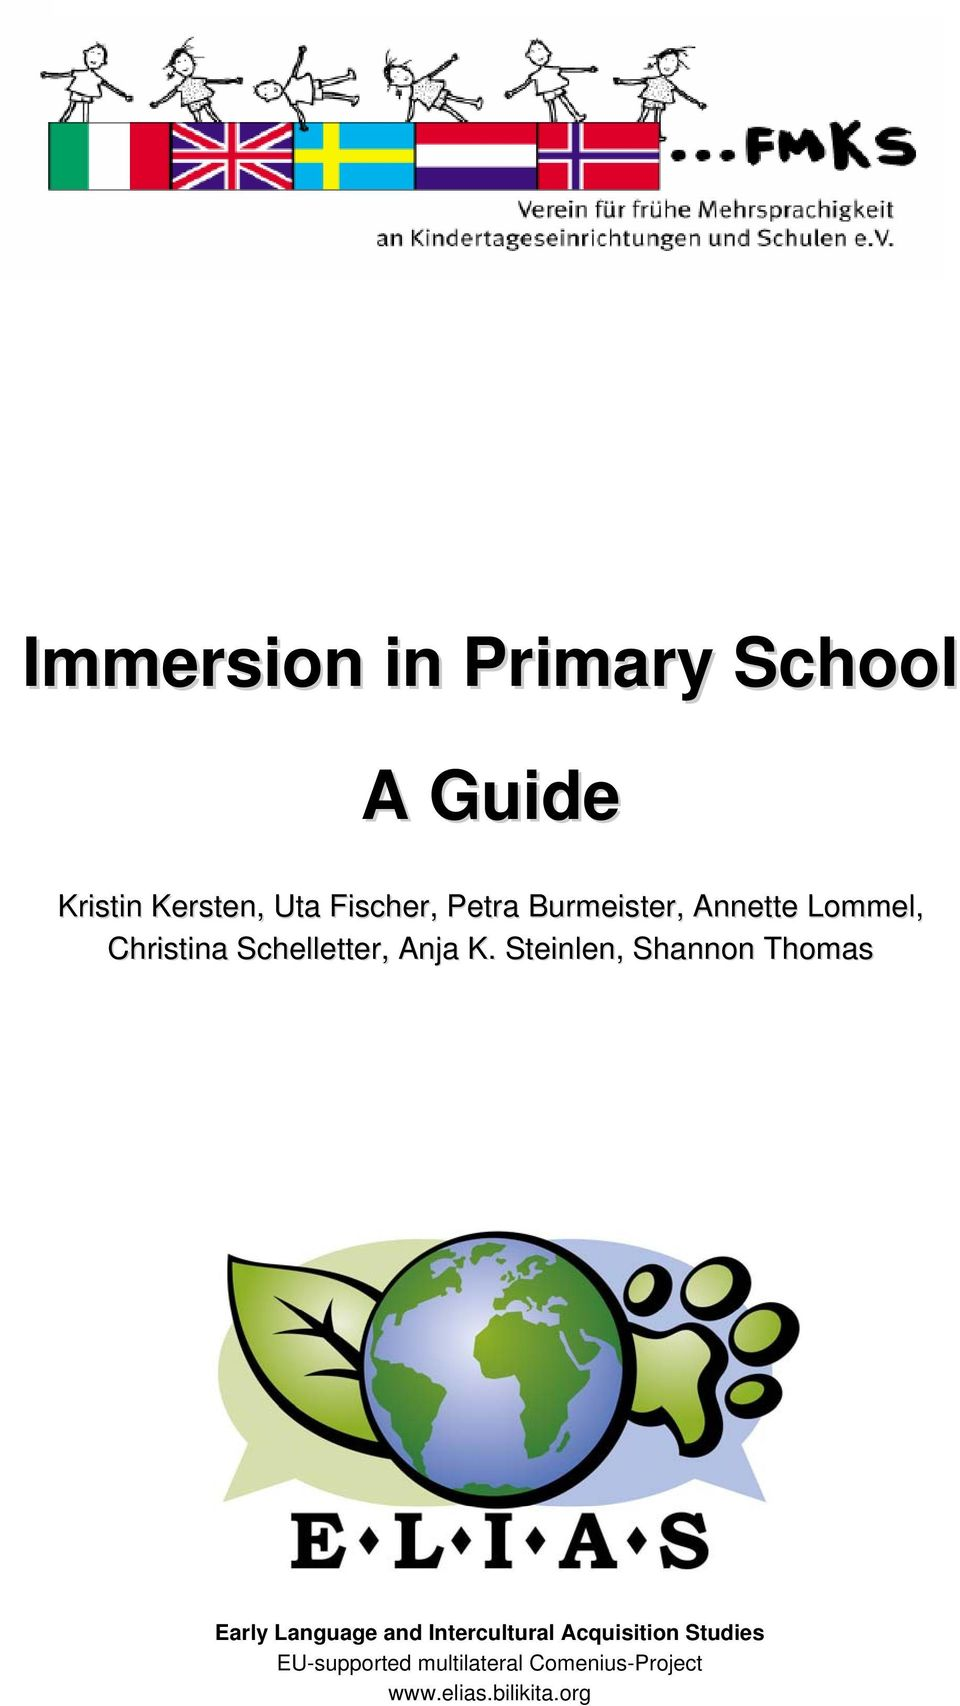 eu Immersion in Primary School A Guide Kristin Kersten, Uta Fischer, Petra Burmeister, Annette Lommel, Christina